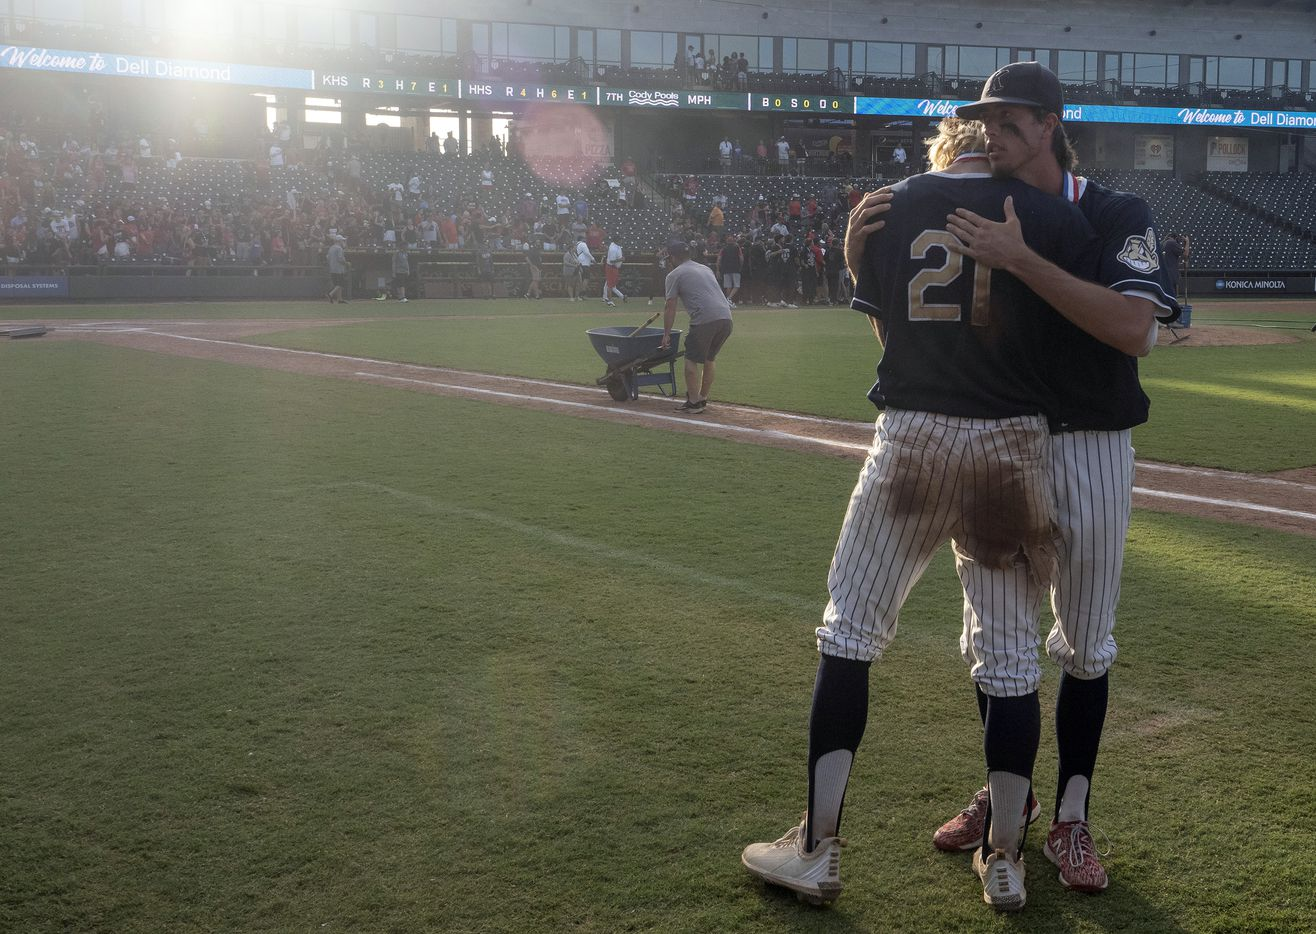 Keller Eric Hammond, (27),  gives teammate, Zach Rike, (21), a hug after coming up short against Rockwall-Heath during the 2021 UIL 6A state baseball final held, Saturday, June 12, 2021, in Round Rock, Texas.  Rockwall-Heath defeated Keller 4-3.   (Rodolfo Gonzalez/Special Contributor)